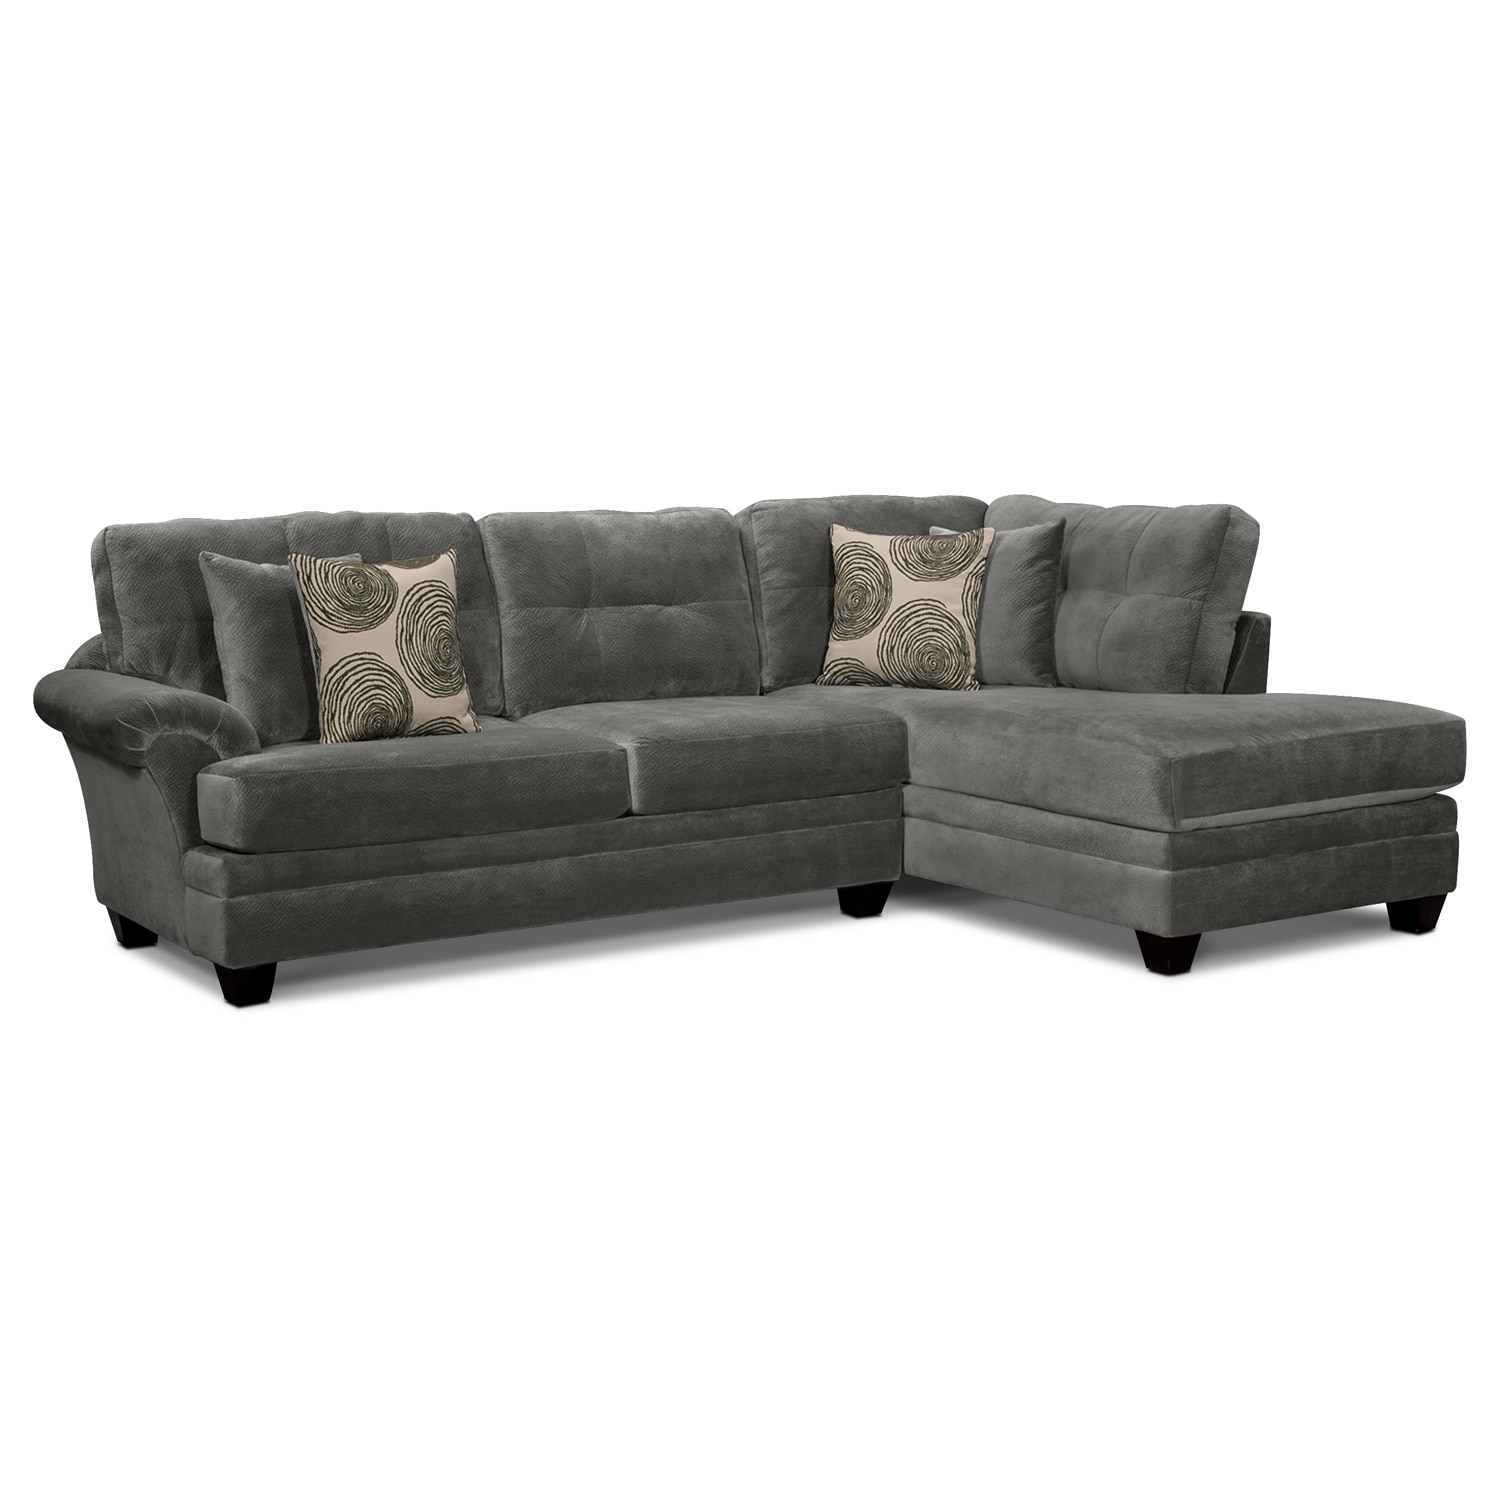 back of sofa facing fireplace mainstays baja futon sleeper bed instructions cordelle 2 piece sectional with right chaise gray